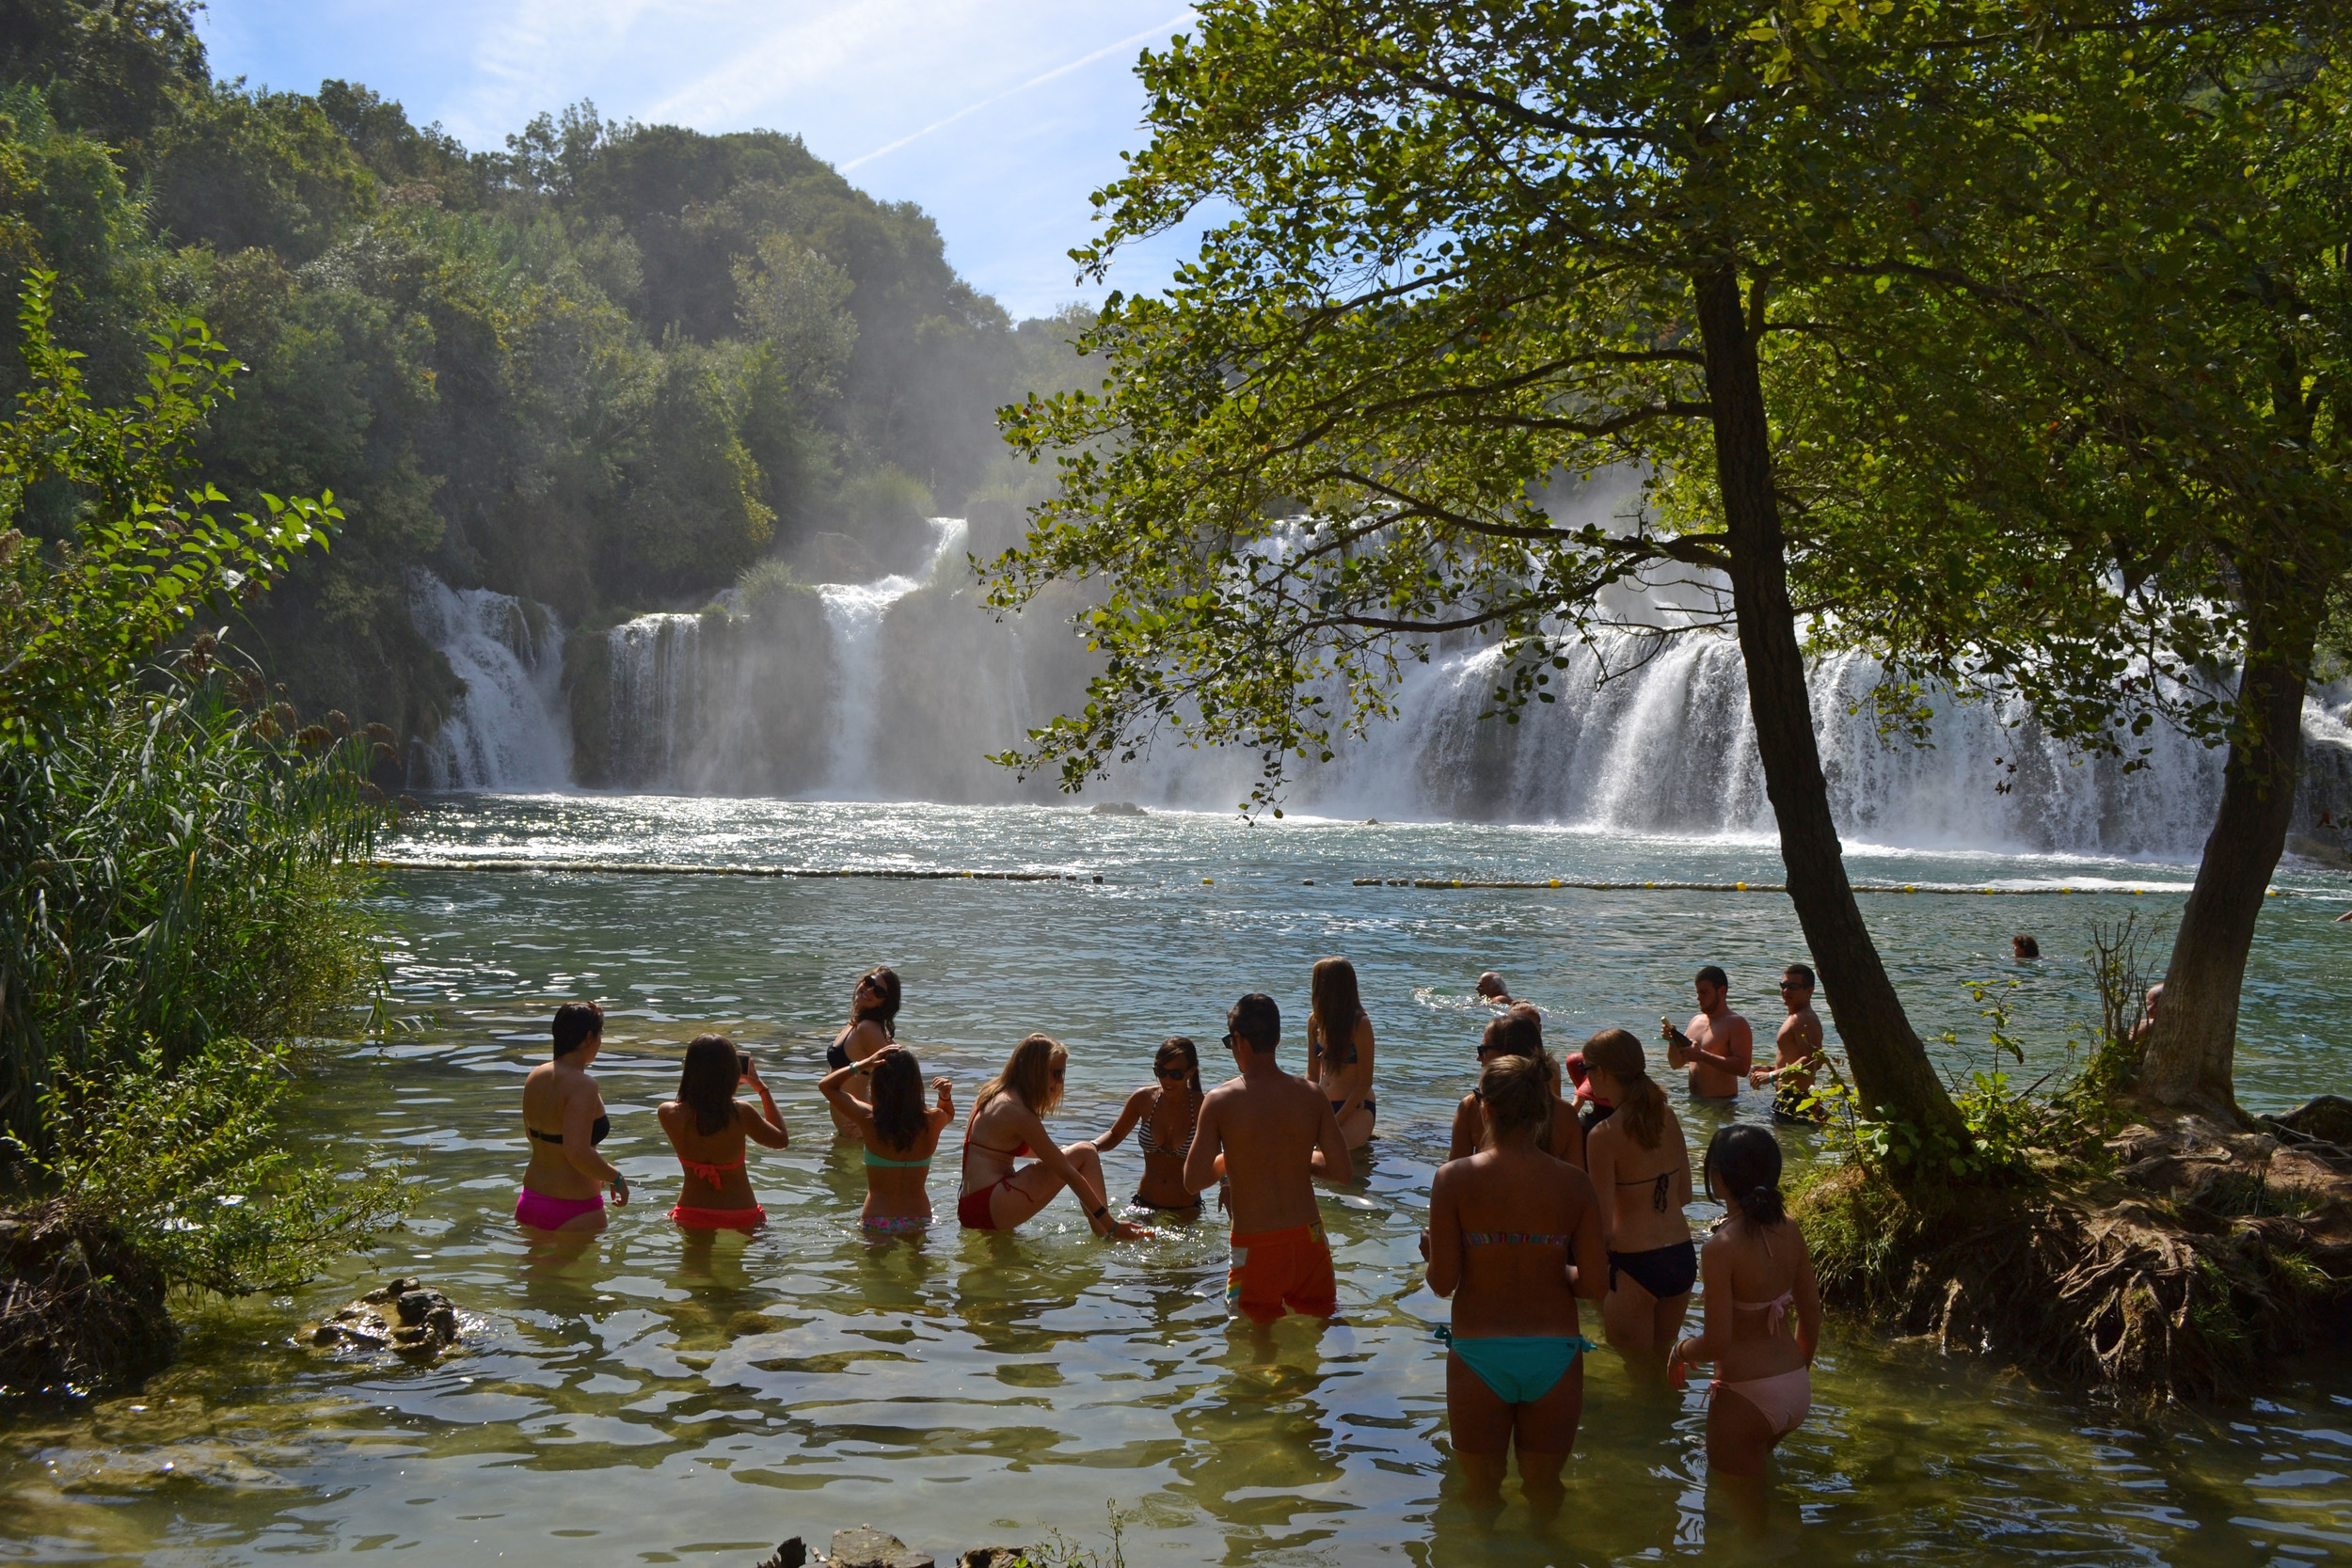 Krka-waterfalls-swimming.jpg